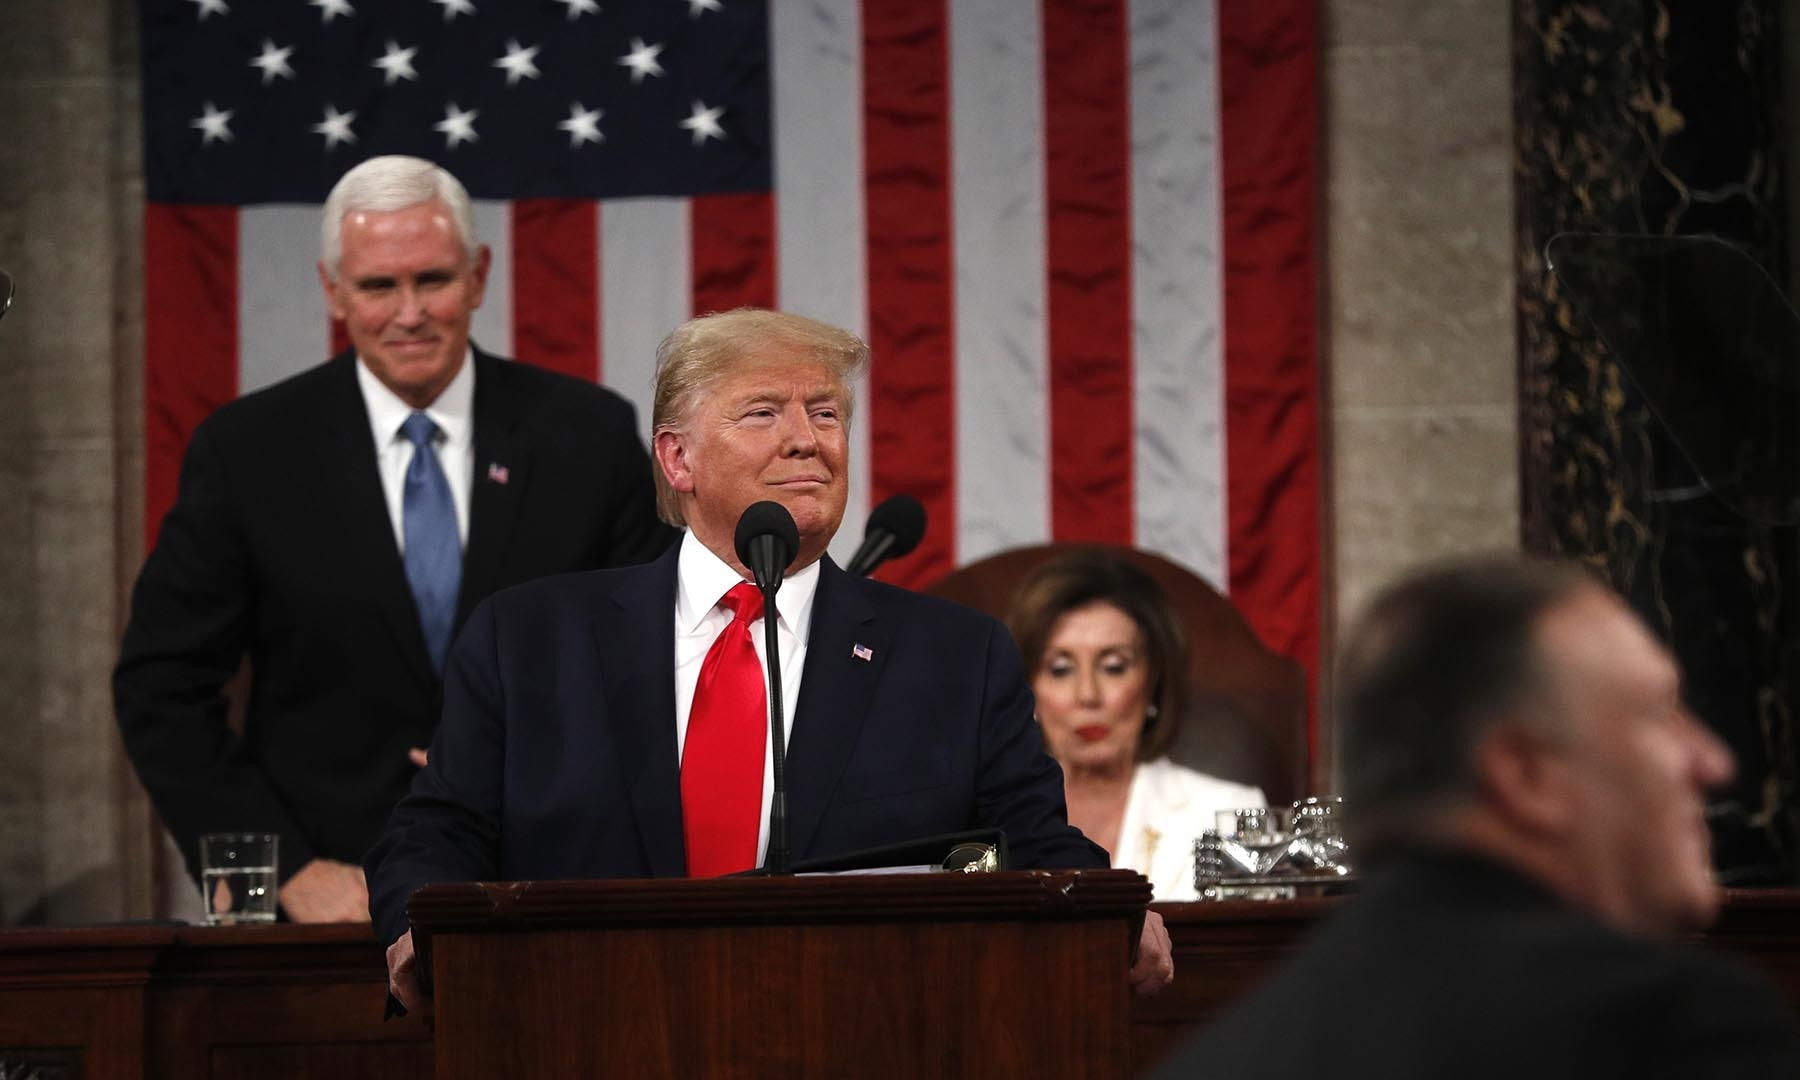 US President Donald Trump's arrives at the podium to deliver his State of the Union address to a joint session of the US Congress in the House Chamber of the US Capitol in Washington, DC, on February 4. — Reuters